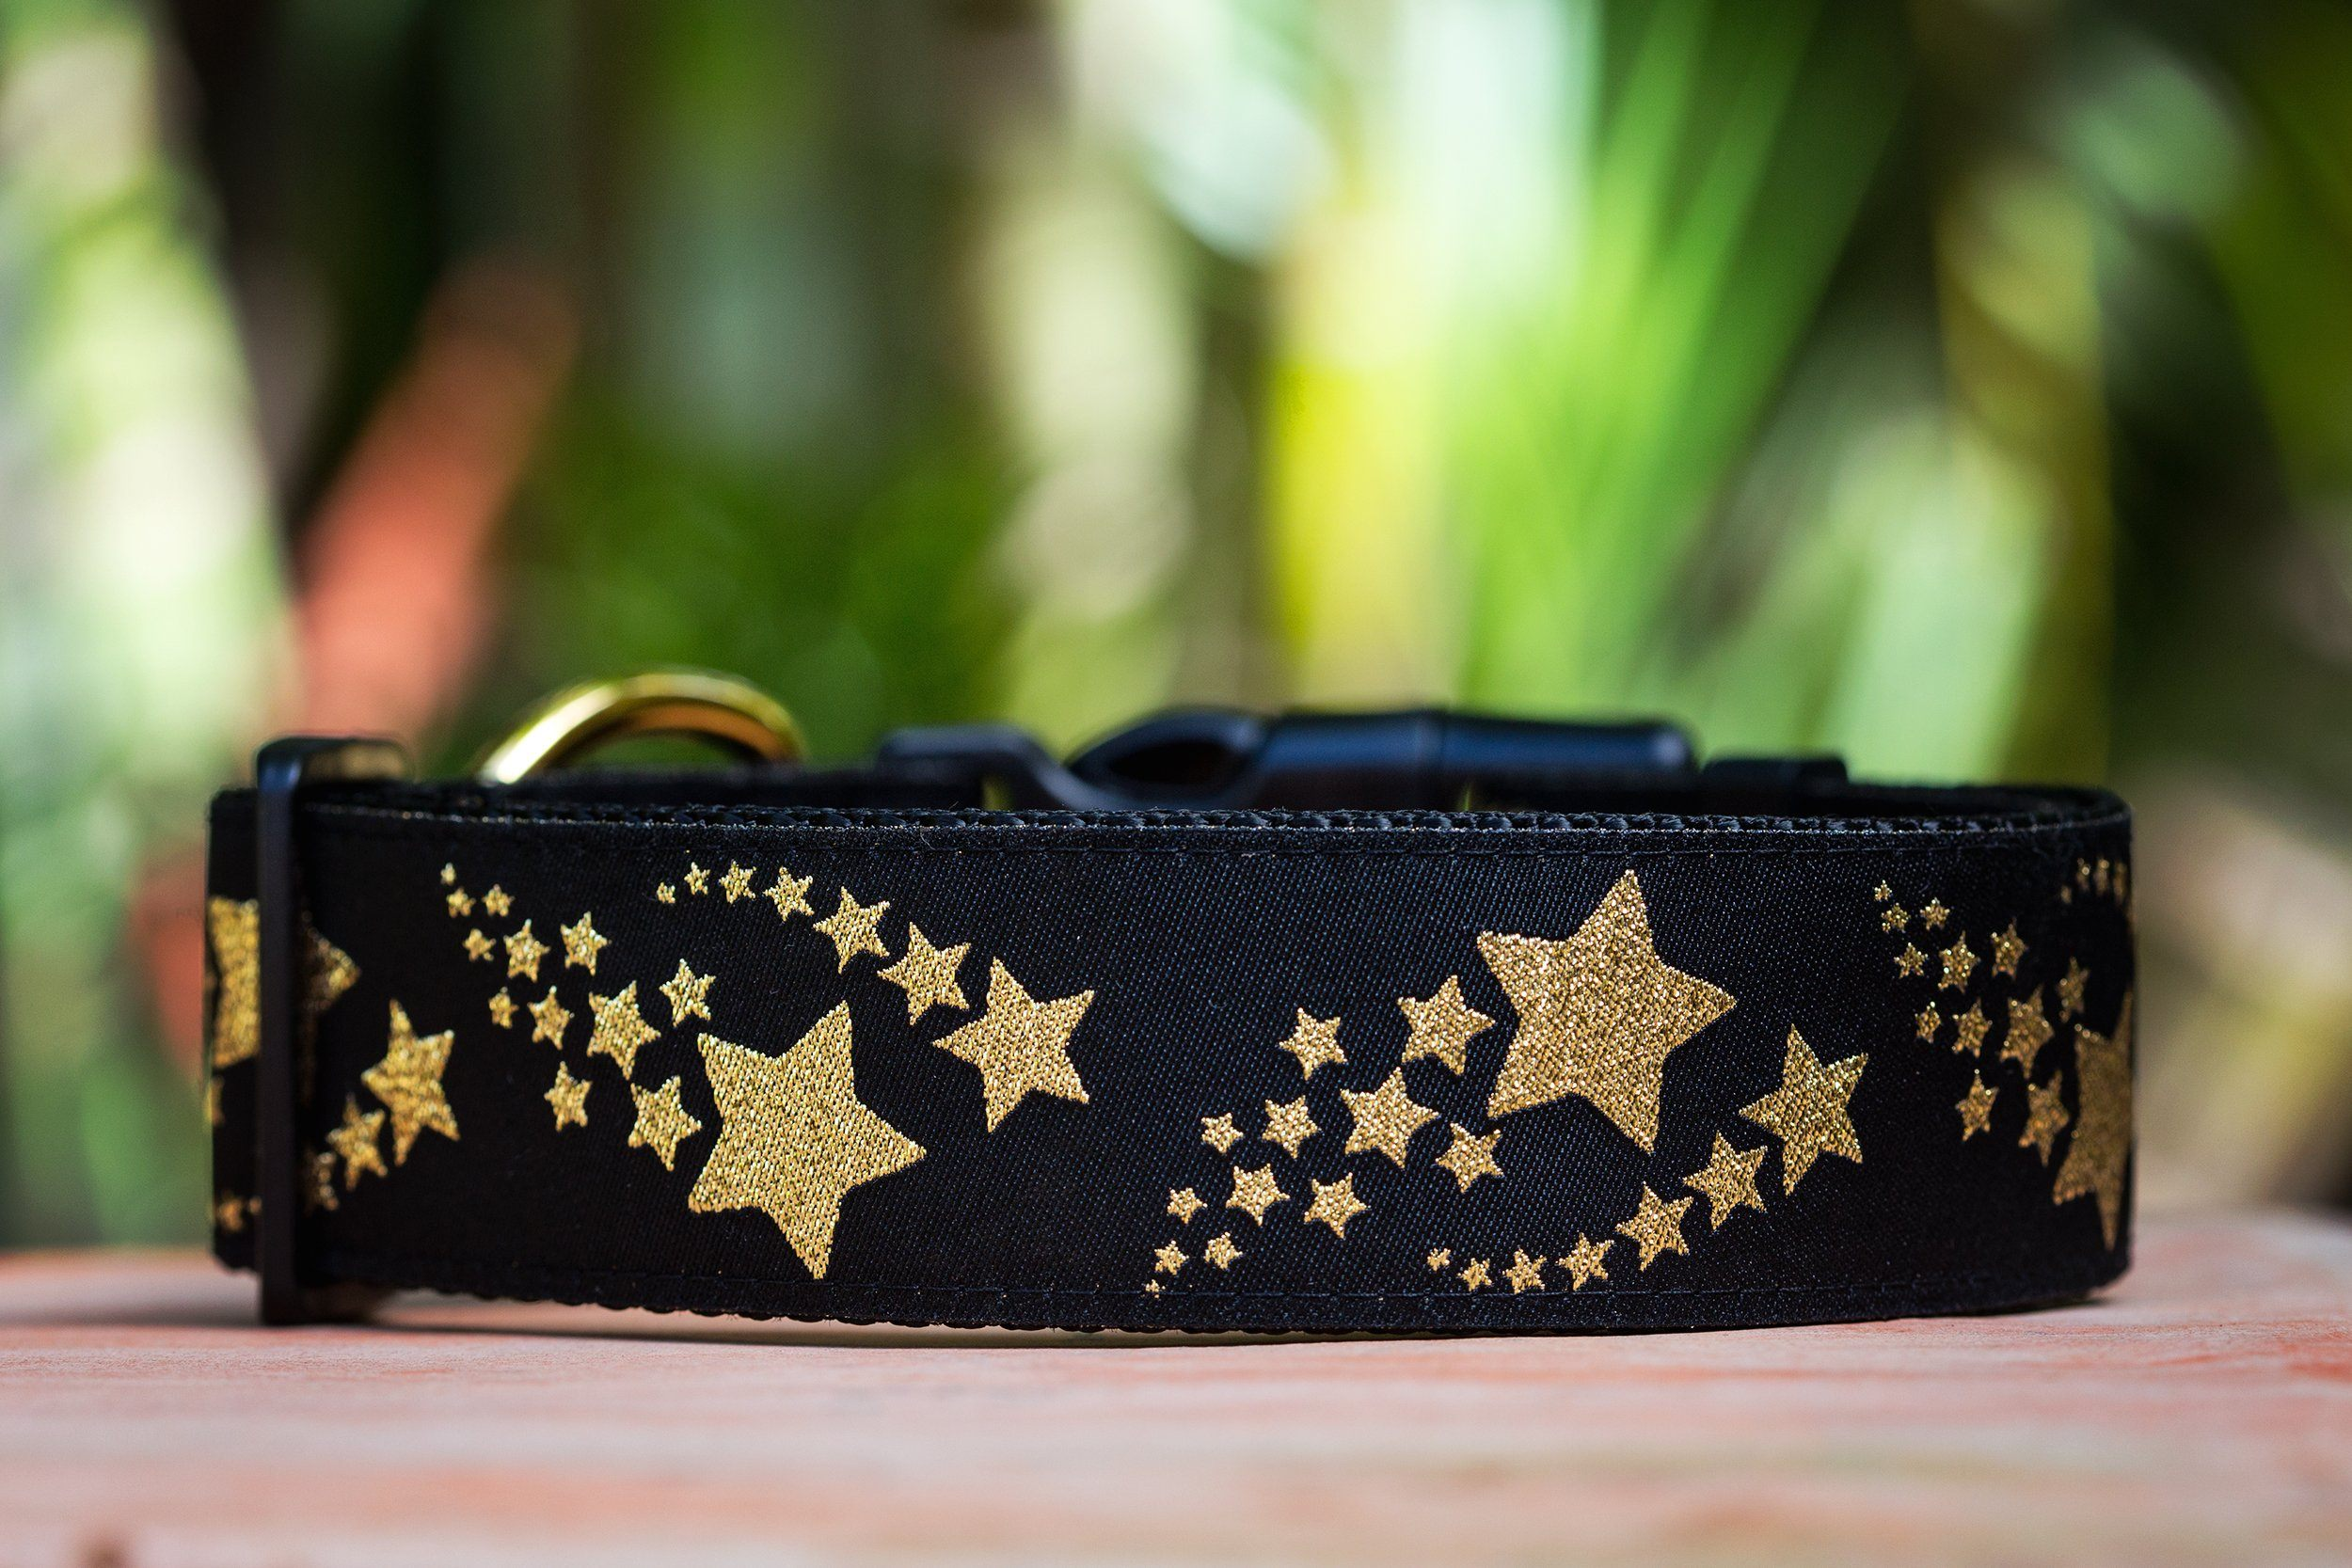 dog collars made in Australia, featuring golden shooting stars pattern. A high quality and unique dog collar.